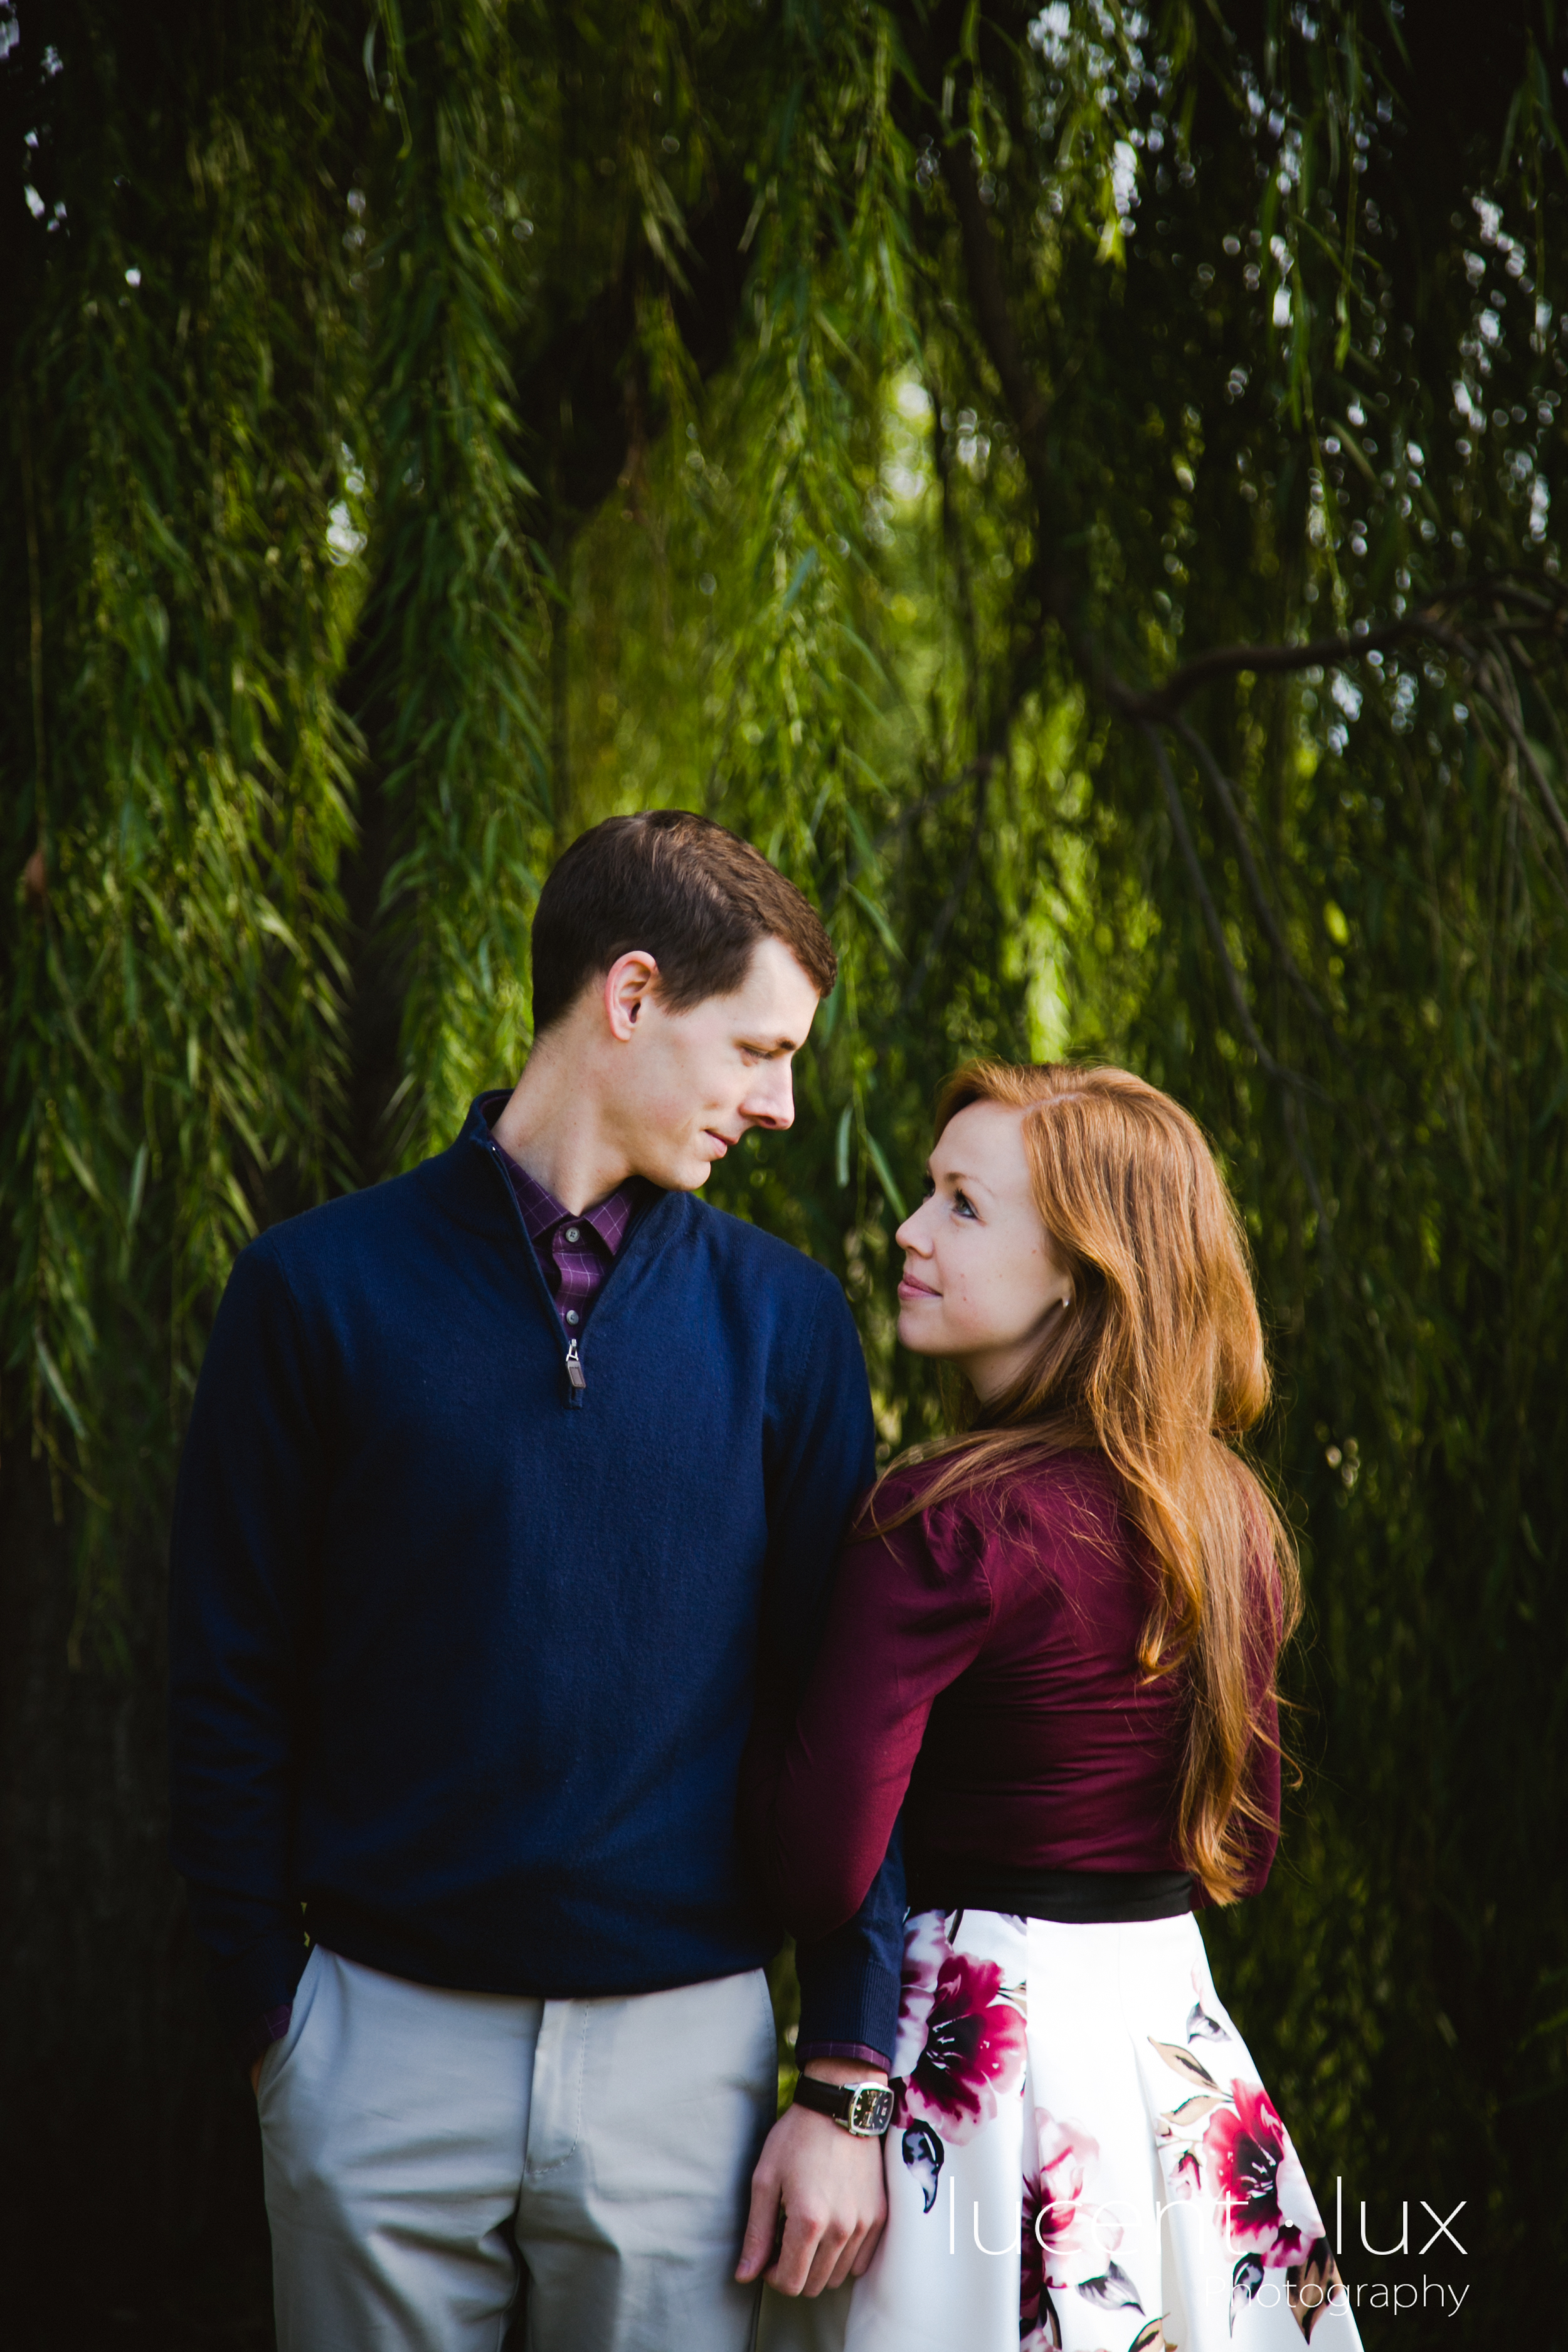 Engagement-Photography-Baltimore-Maryland-Photographer-Nature-WillowTree-Natural-Park-Lake-Outdoor-Fall-Photography-125.jpg